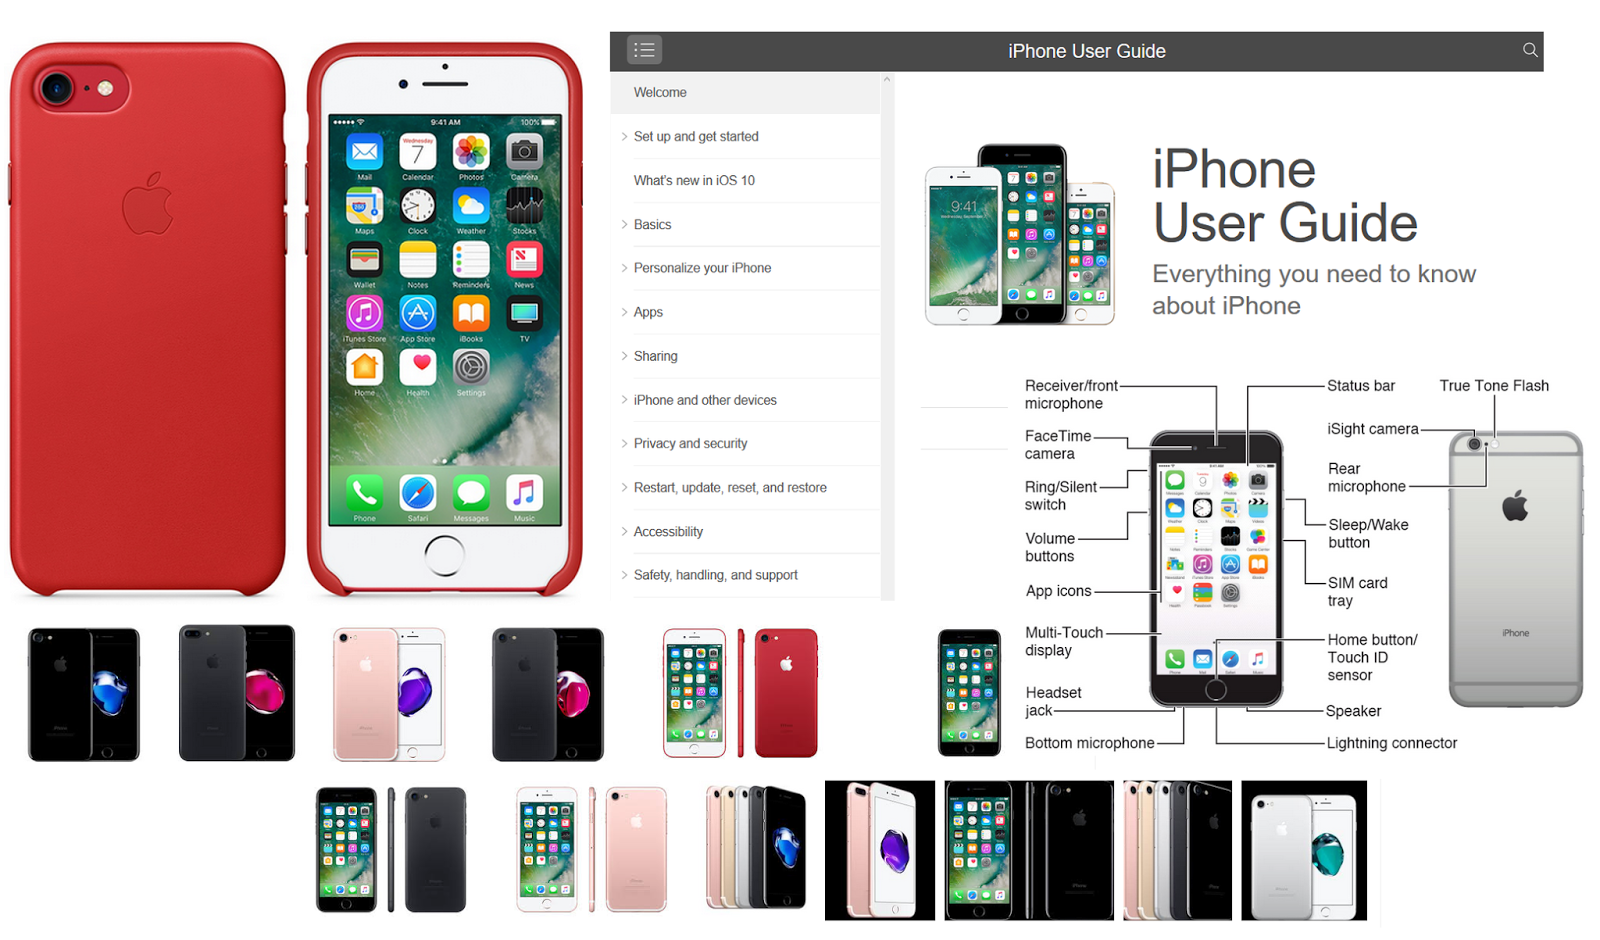 Iphone 7 user manual pdf user guide for iphone 7 plus tutorial iphone 7 user manual pdf user guide for iphone 7 plus tutorial baditri Choice Image